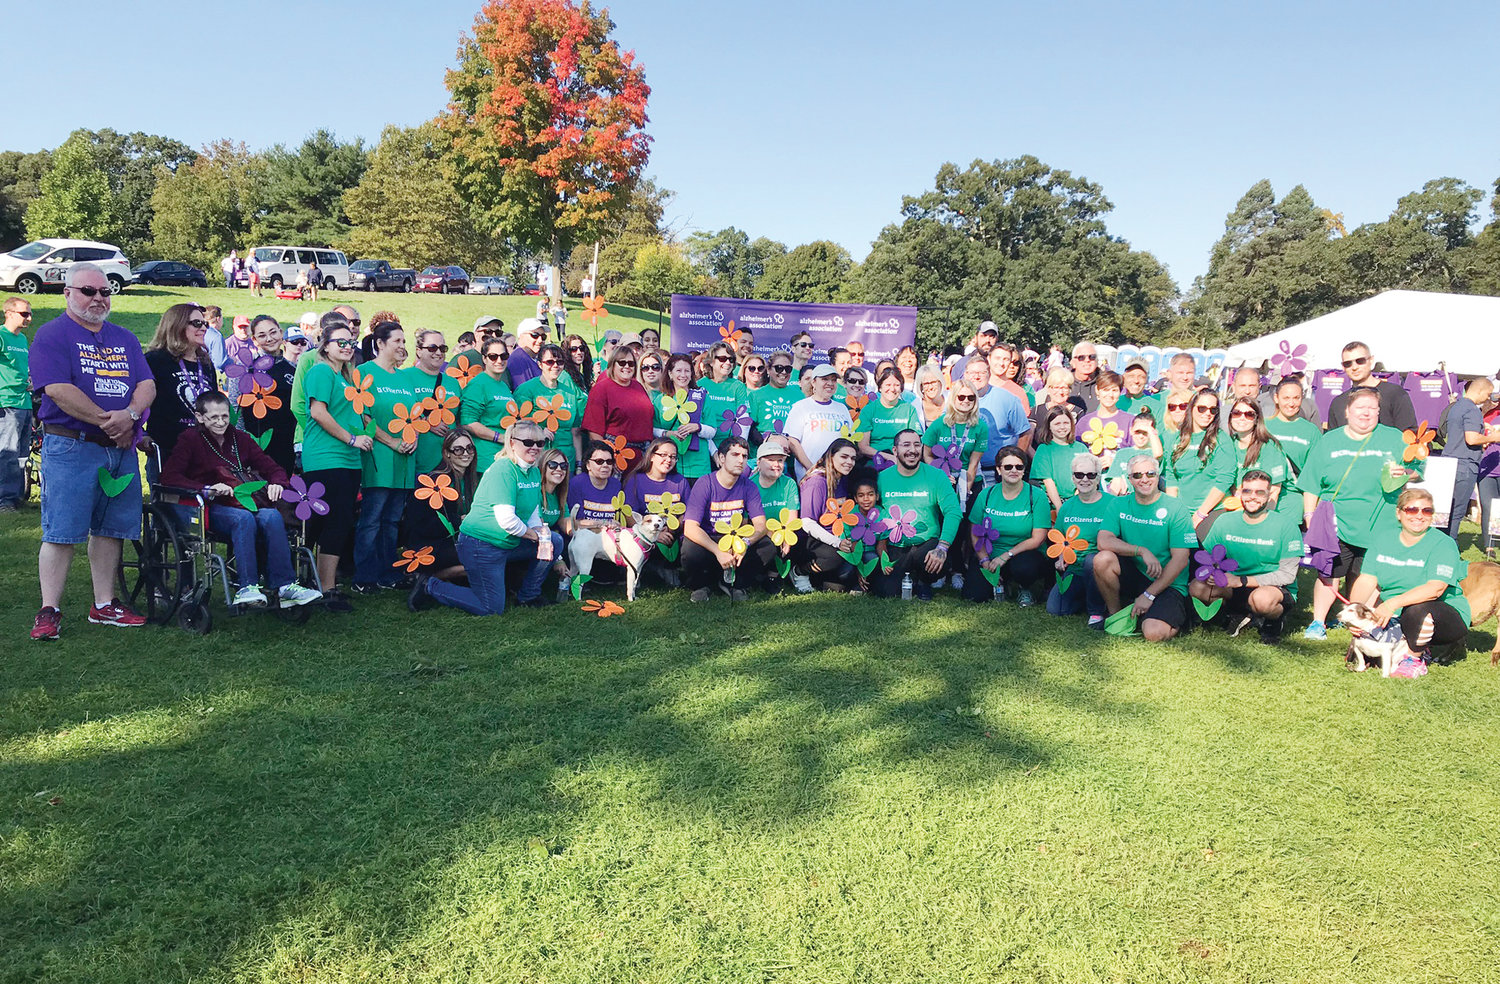 TEAM EFFORT: Members of the Citizens Bank team gather together during the 2018 Providence Walk to End Alzheimer's.